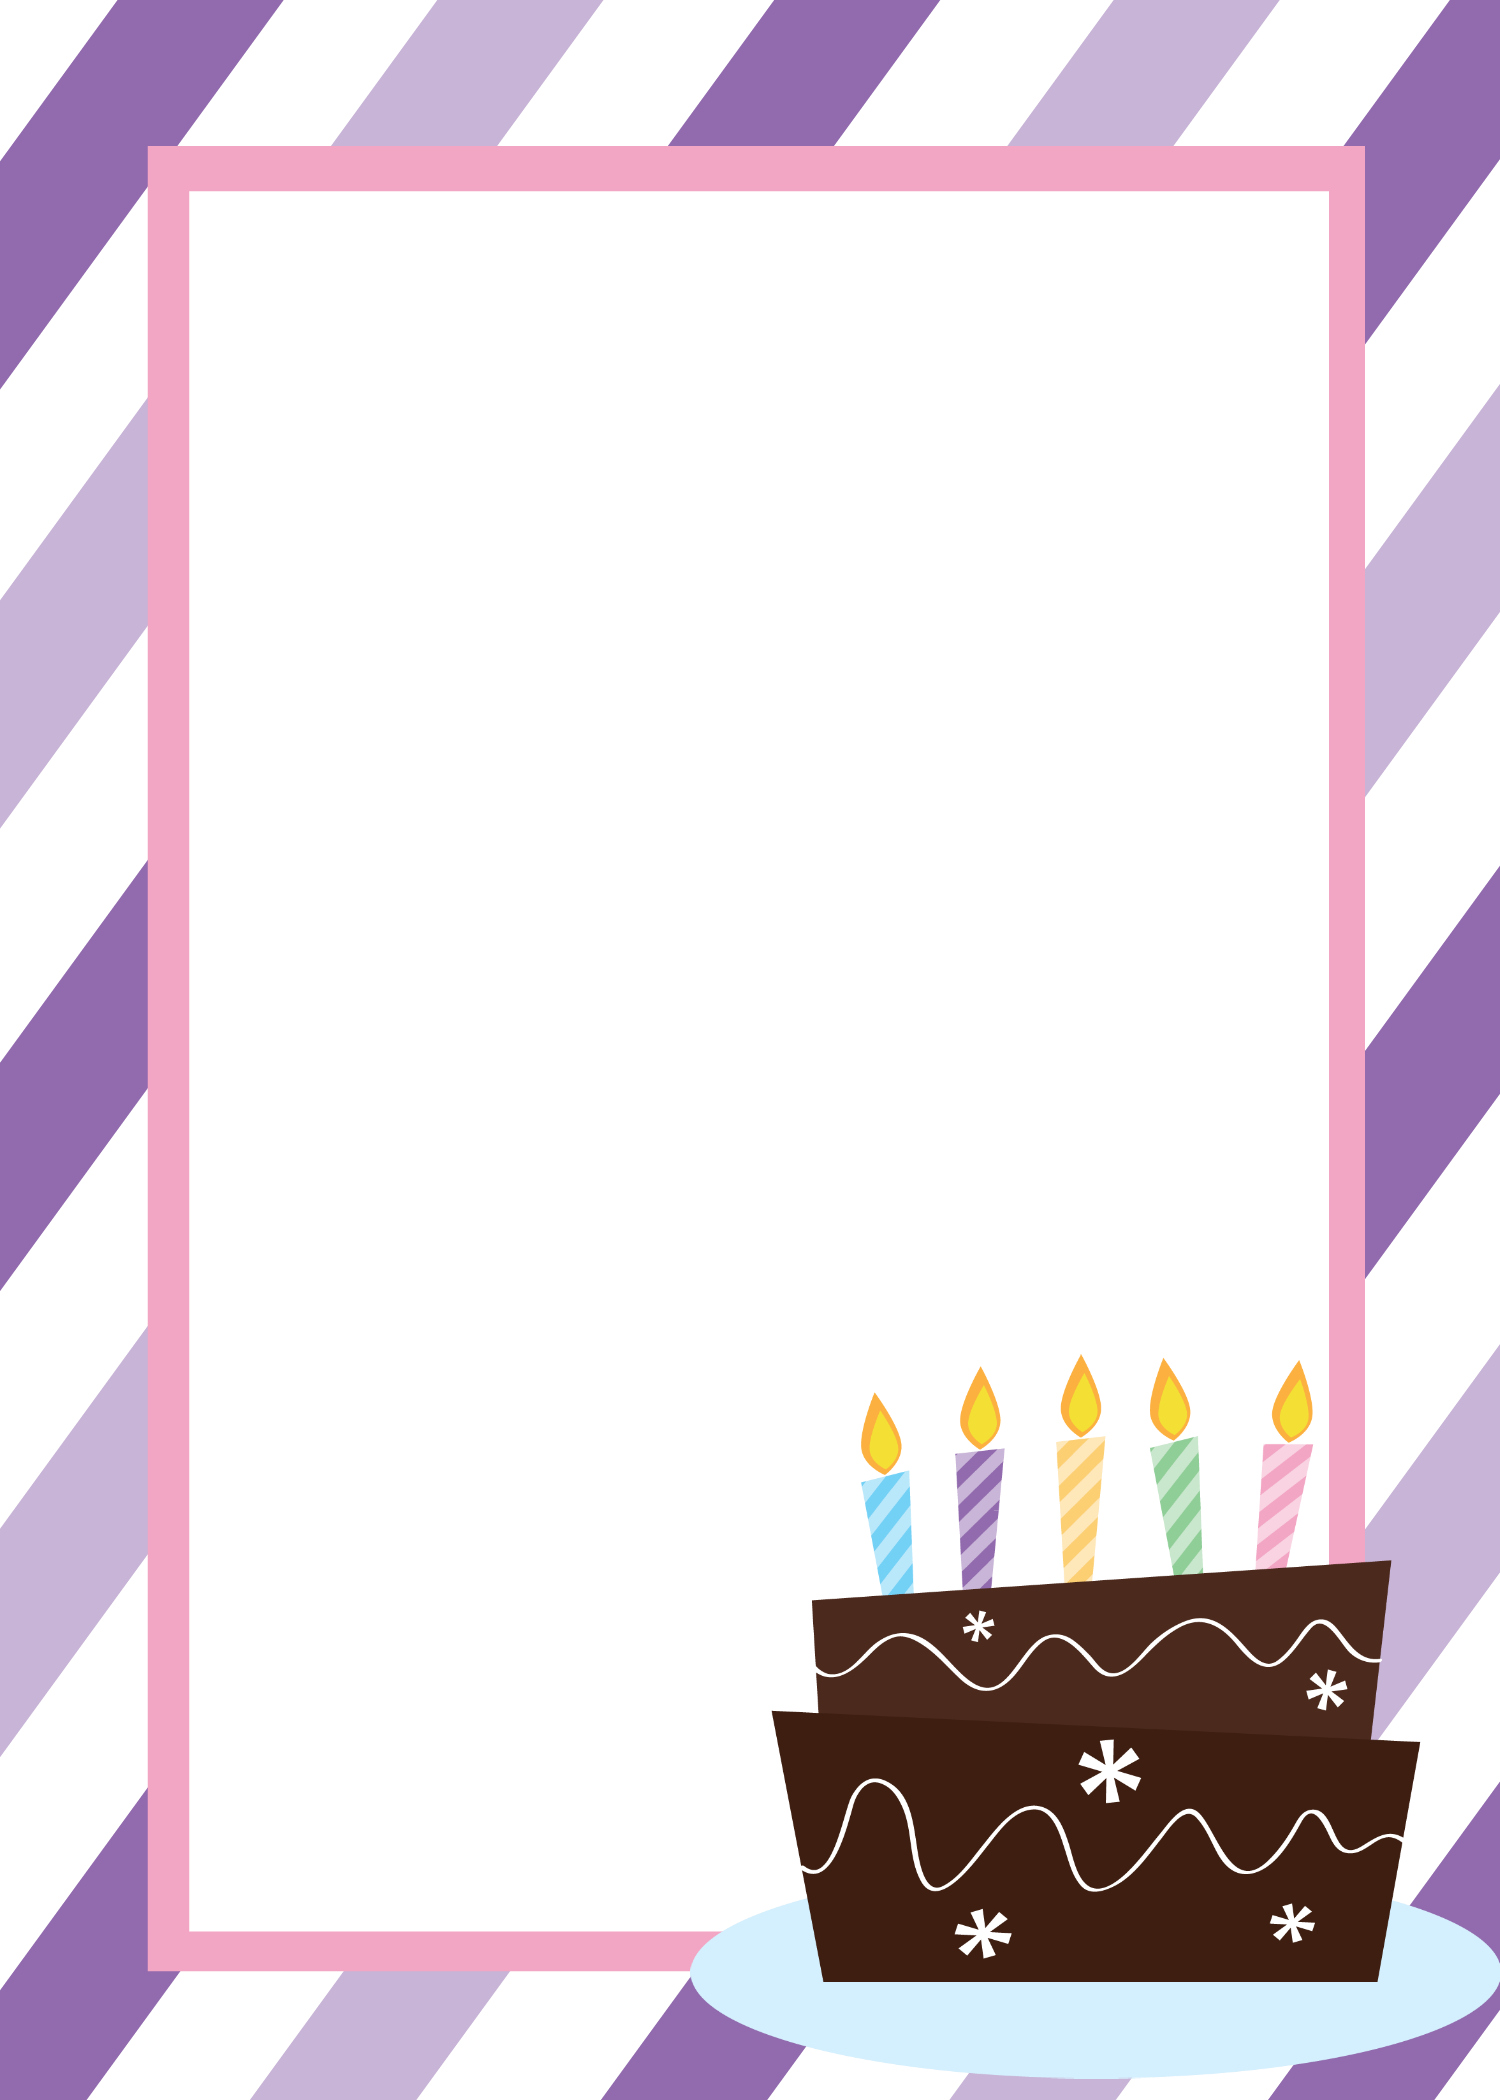 Cars Invitation Card Template Free: Free Printable Birthday Invitation Templates